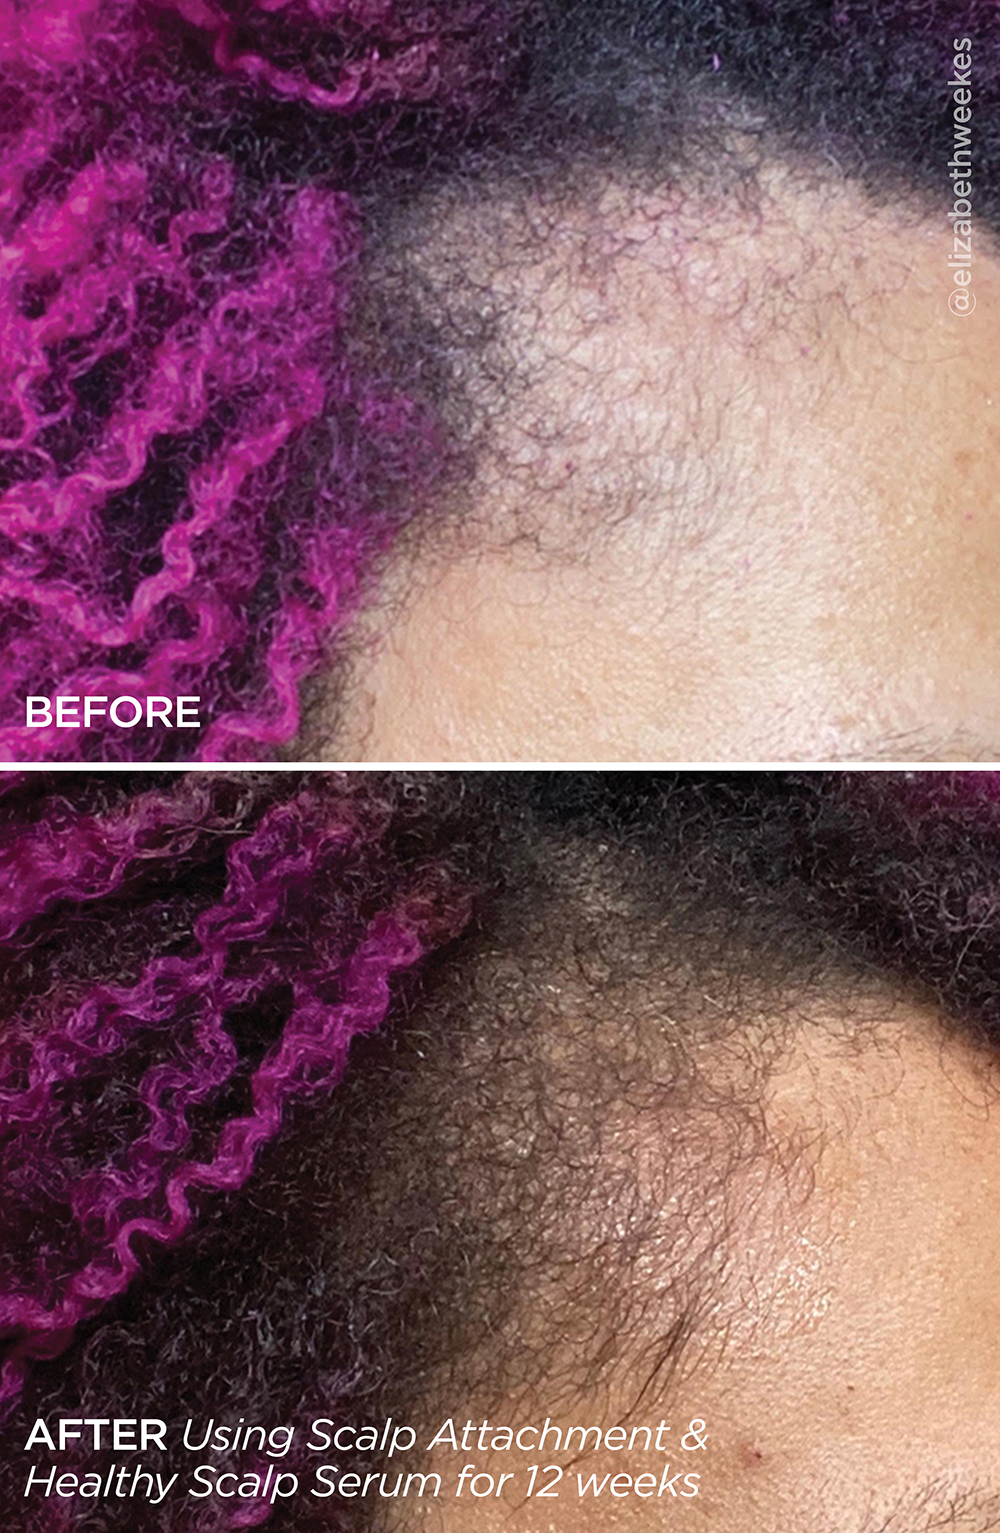 Healthy Scalp Serum before and after